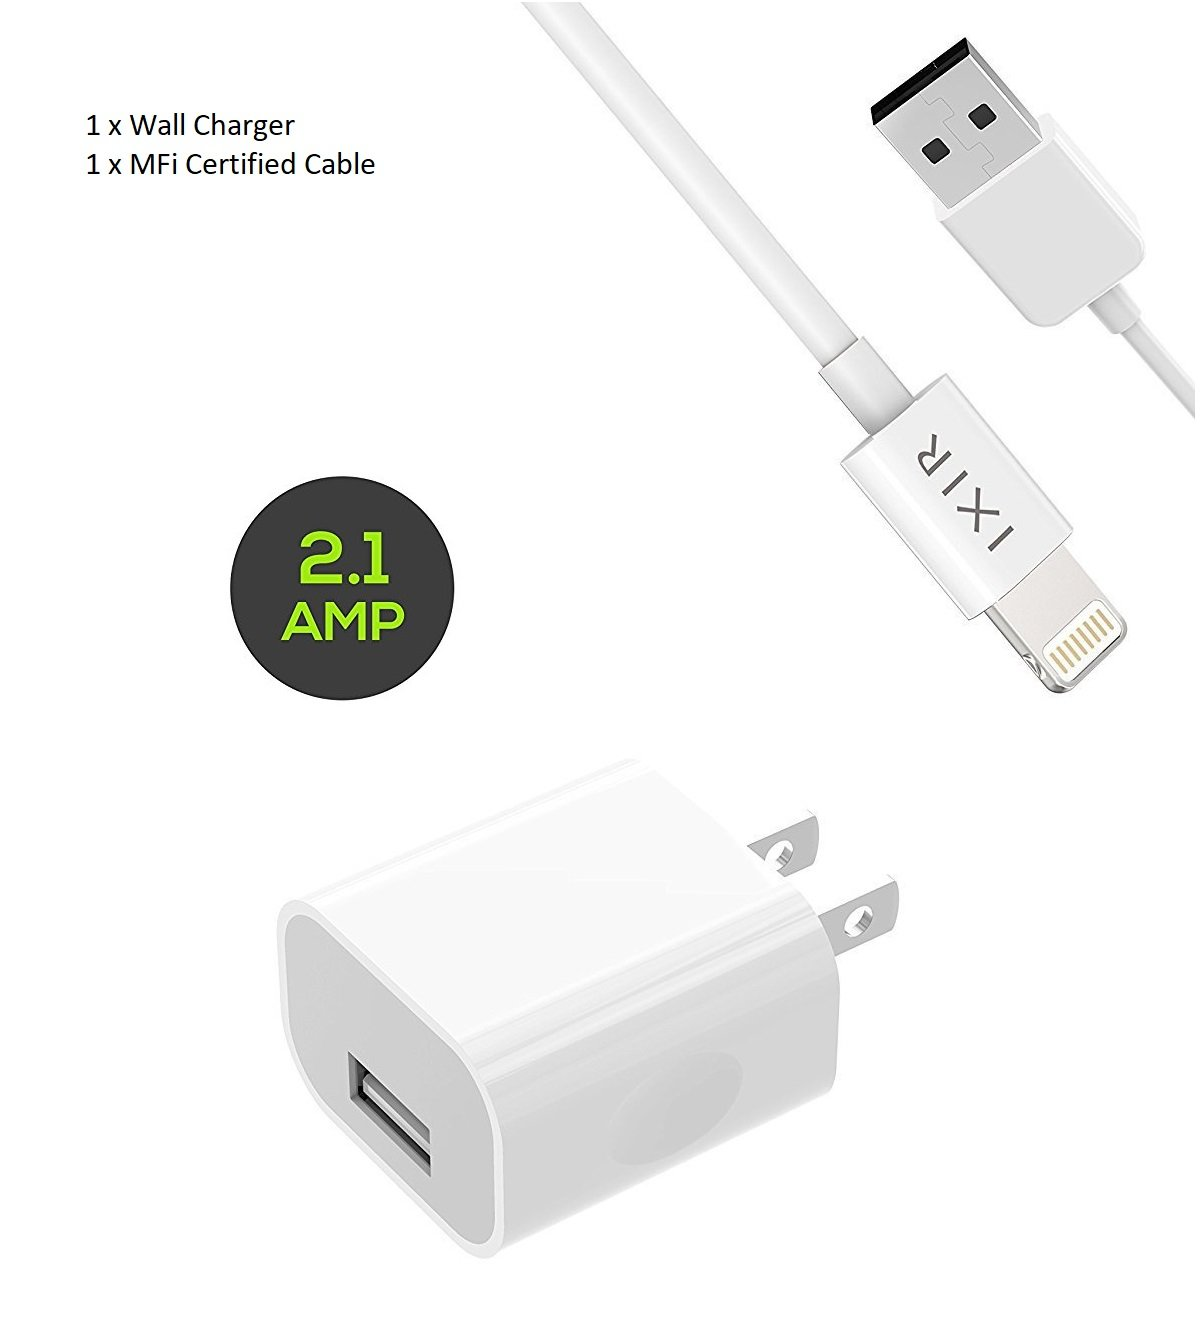 iPhone 8 Charger Set: iPhone X / 8 / 8 Plus / 7 Plus / 7 / 6 / 6S / 6S plus  5W 2 1A Power Adapter and Apple MFi Certified Lightning to USB Cable Kit